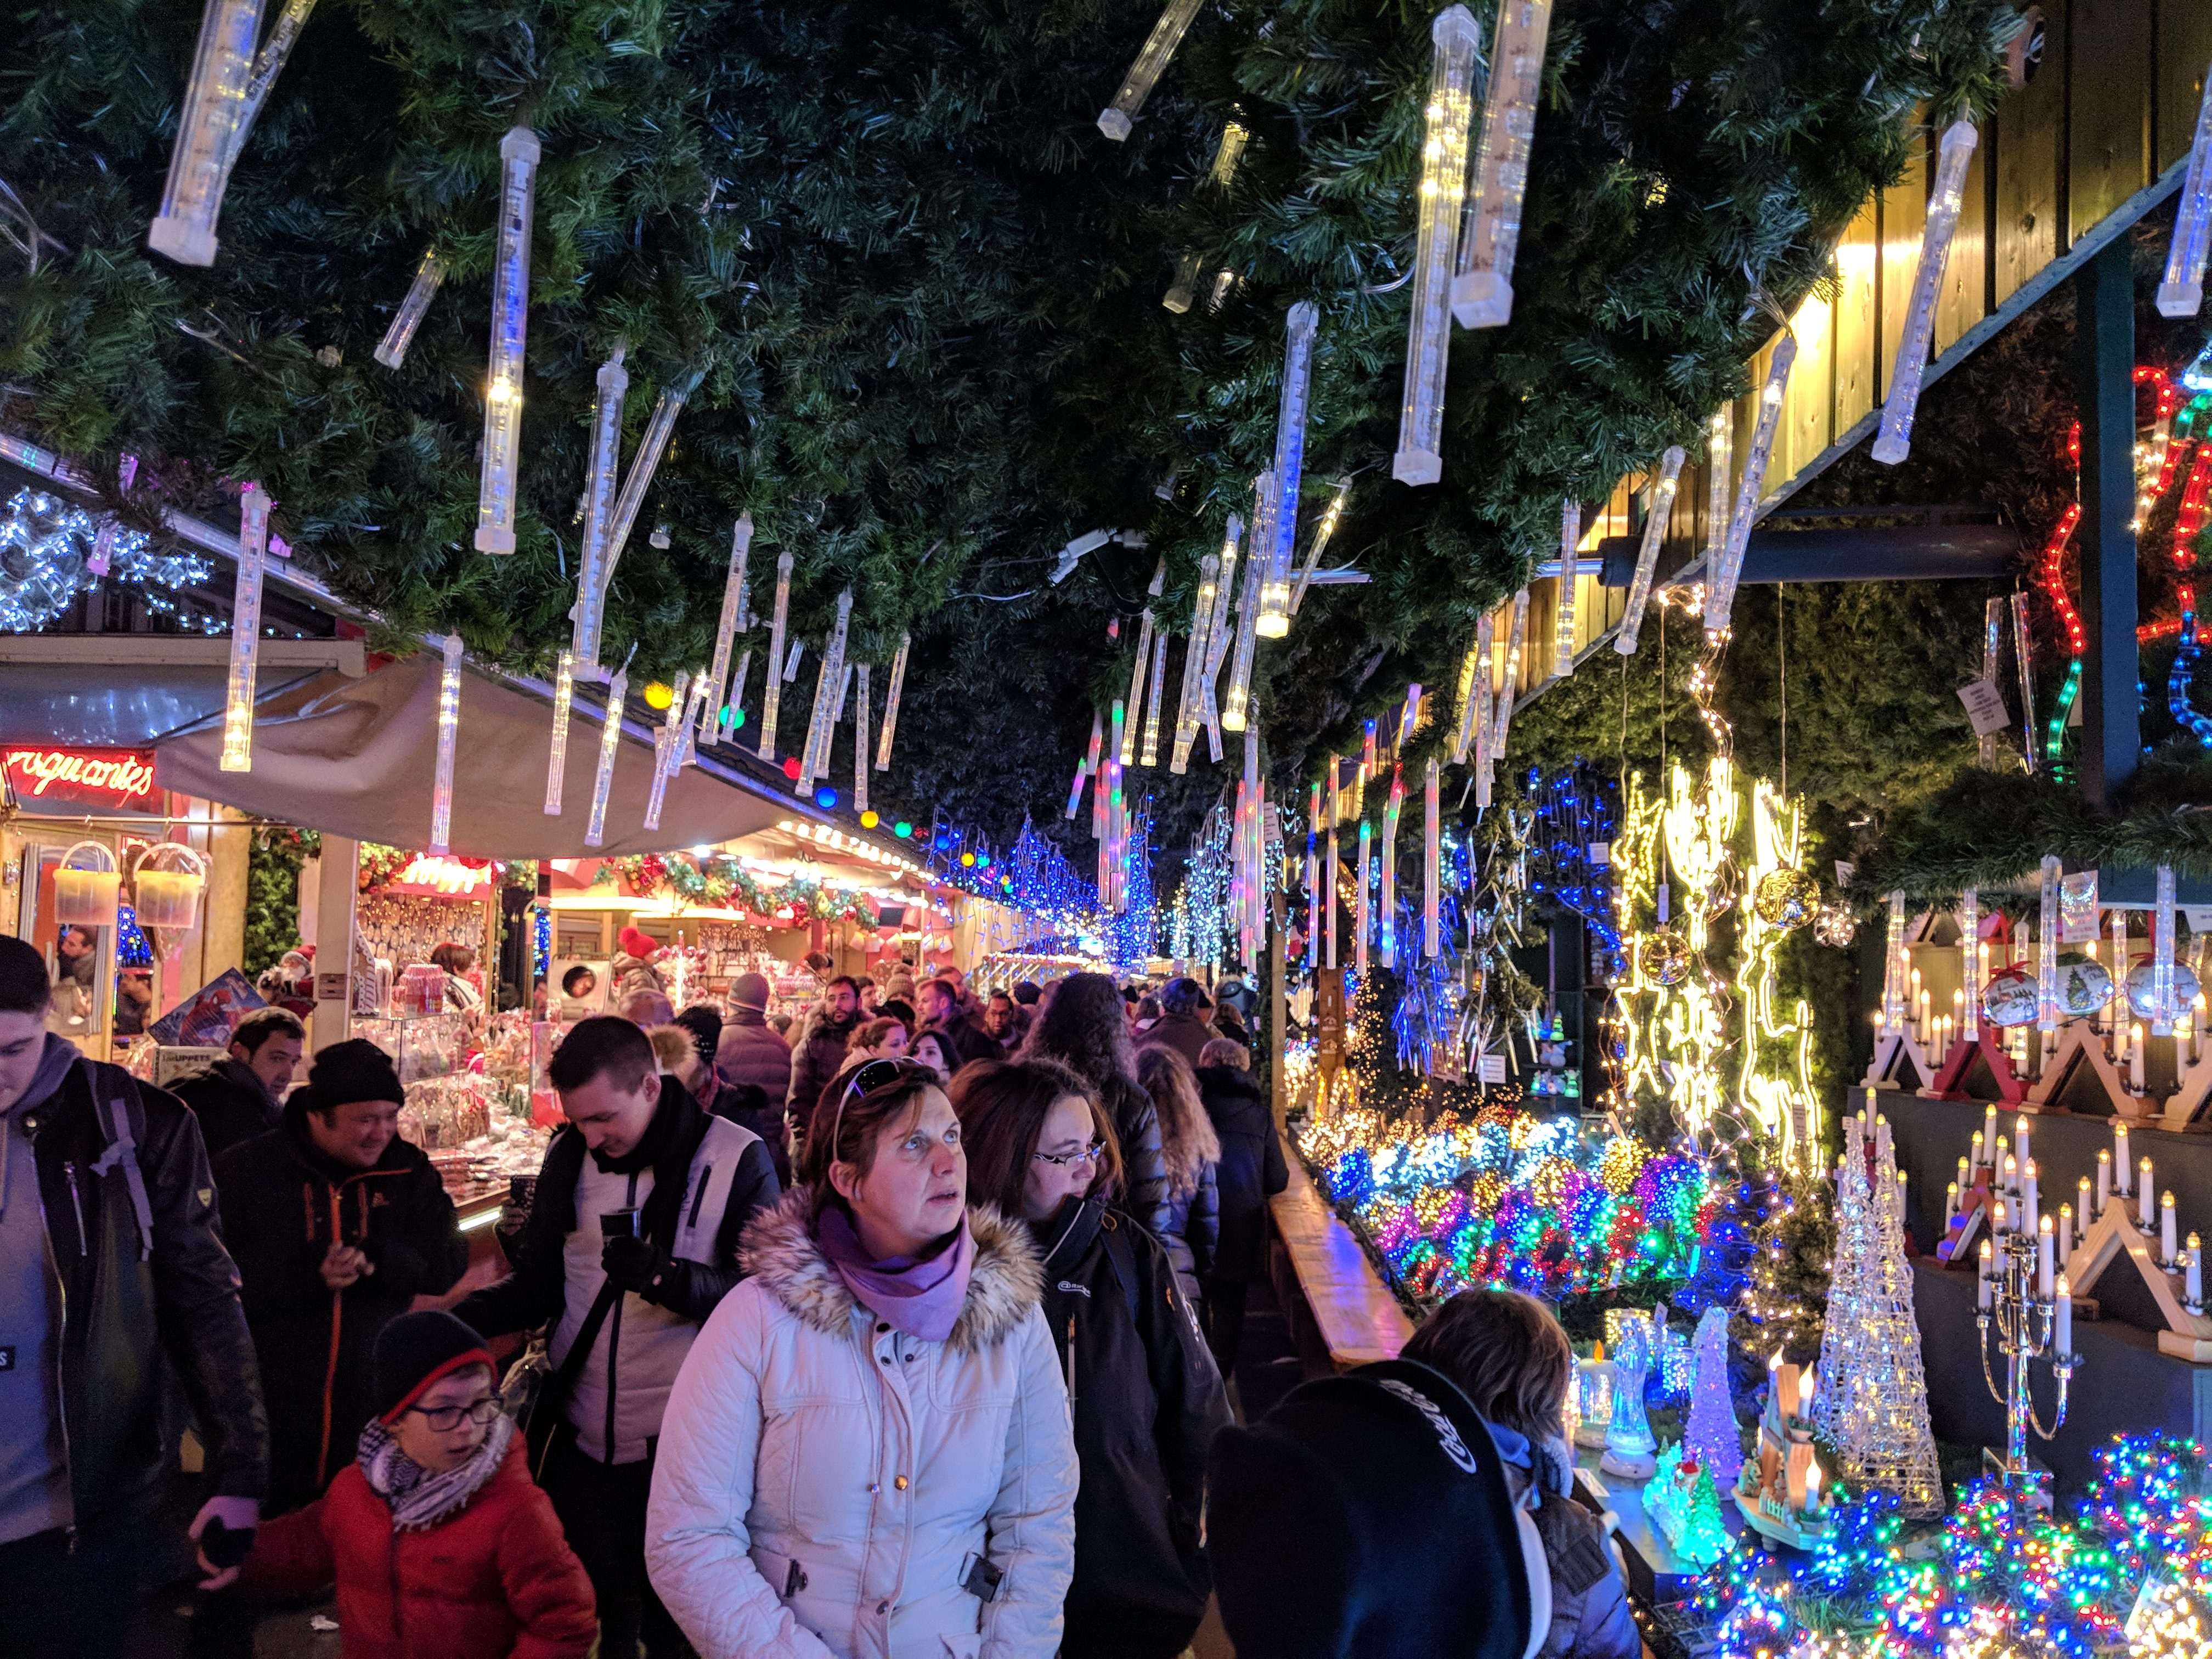 A Christmas market in Strasbourg